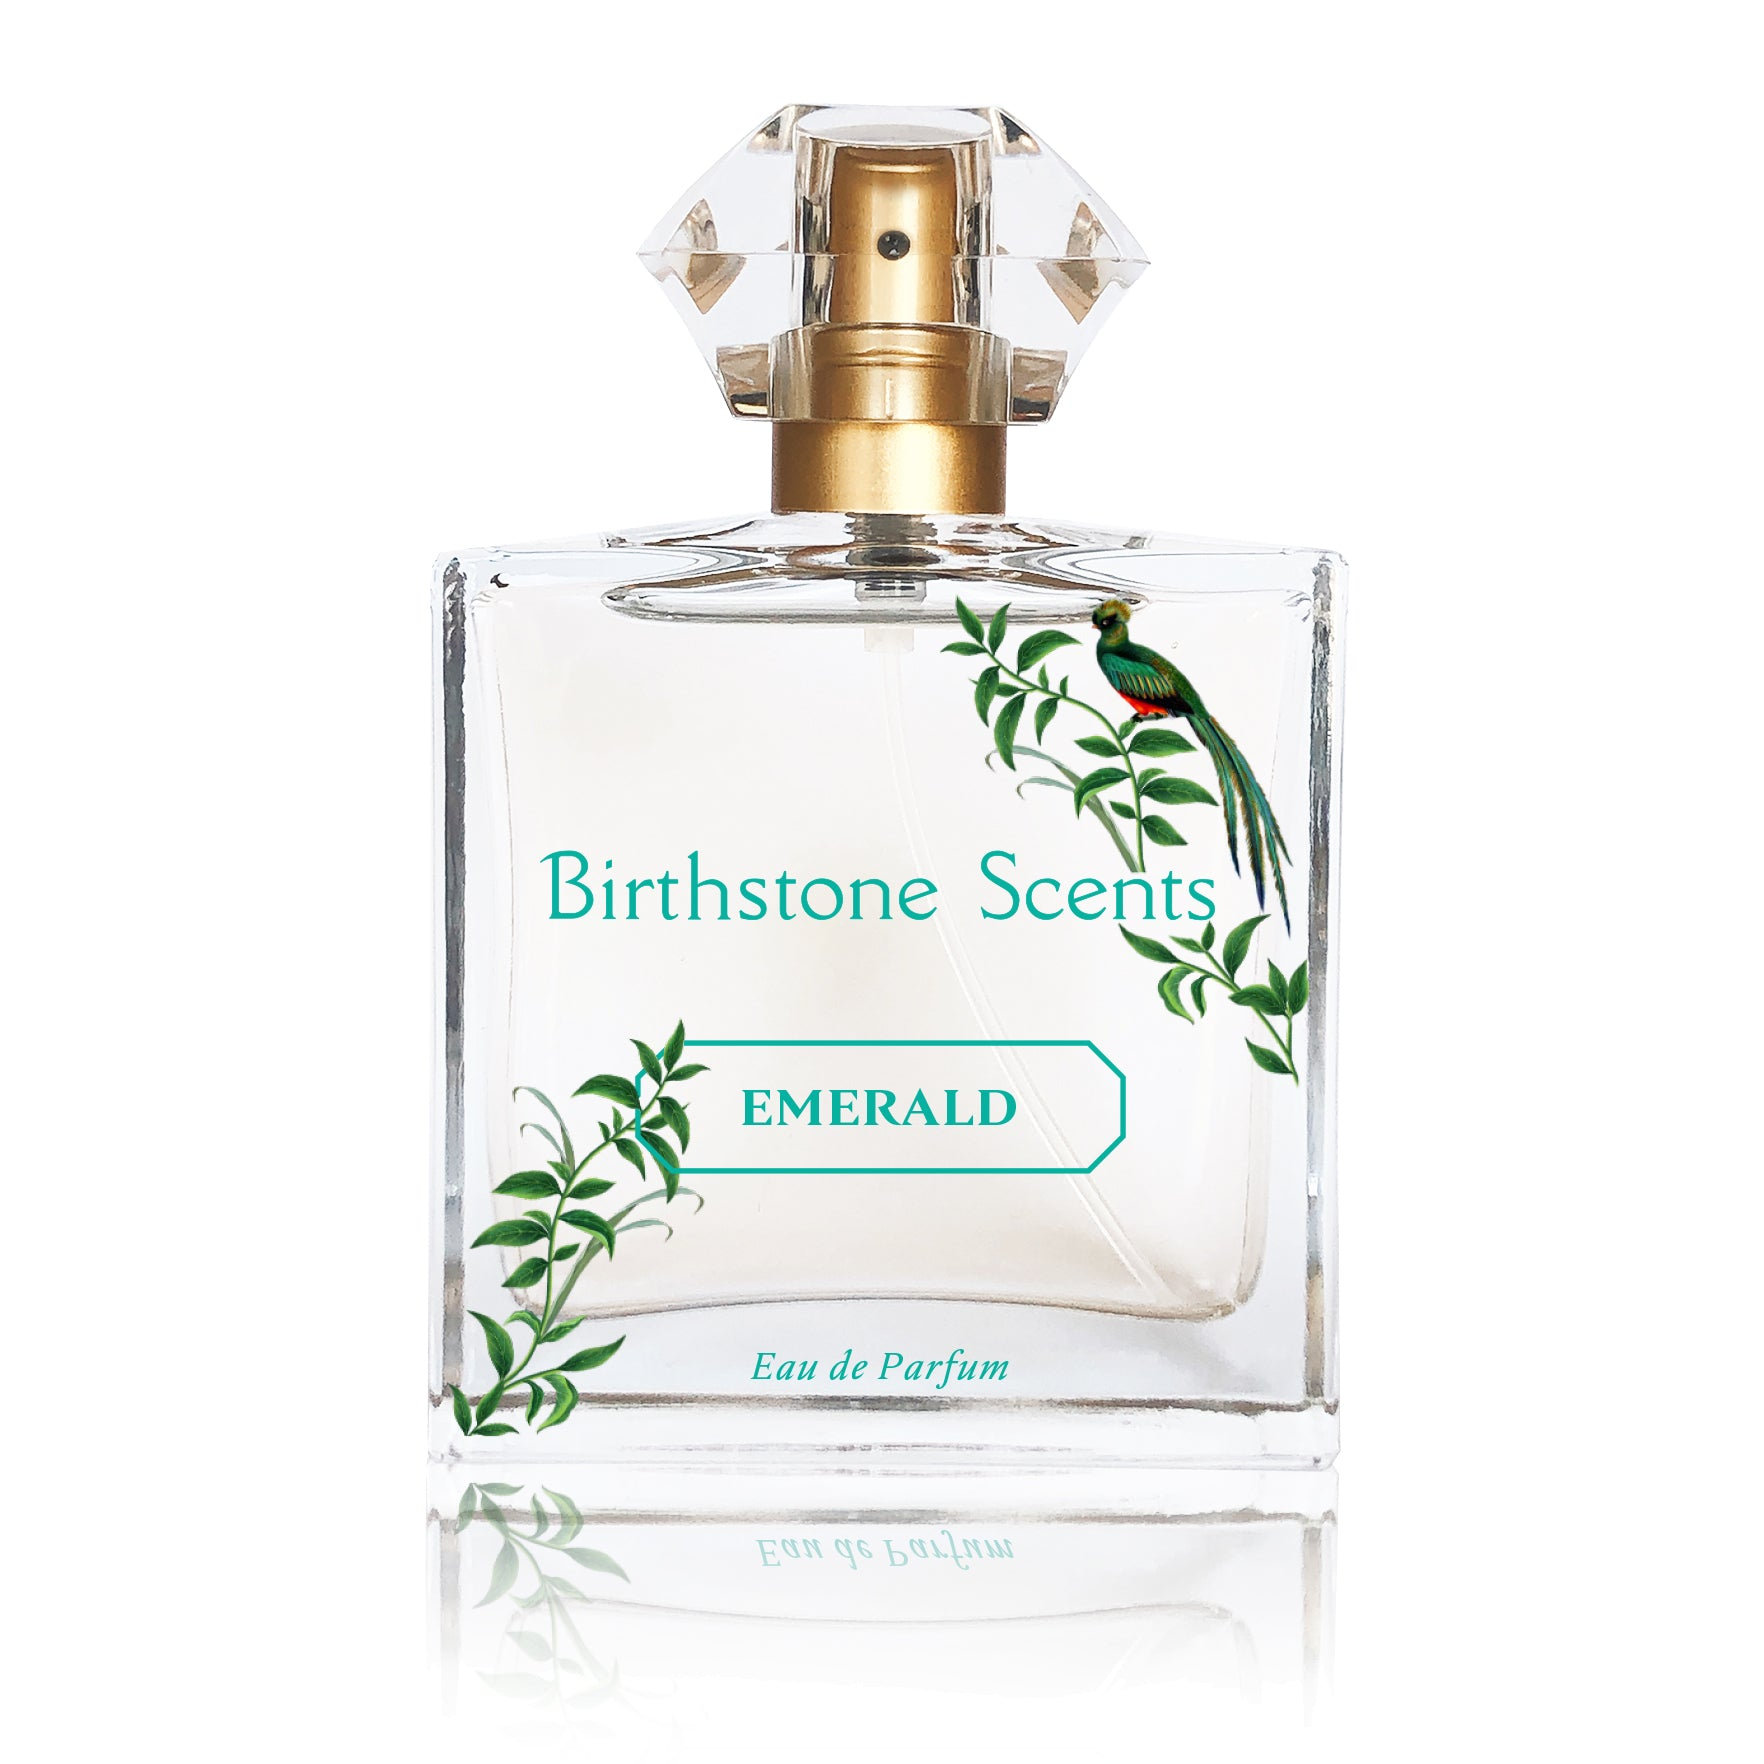 EMERALD PERFUME | May - Birthstone Scents